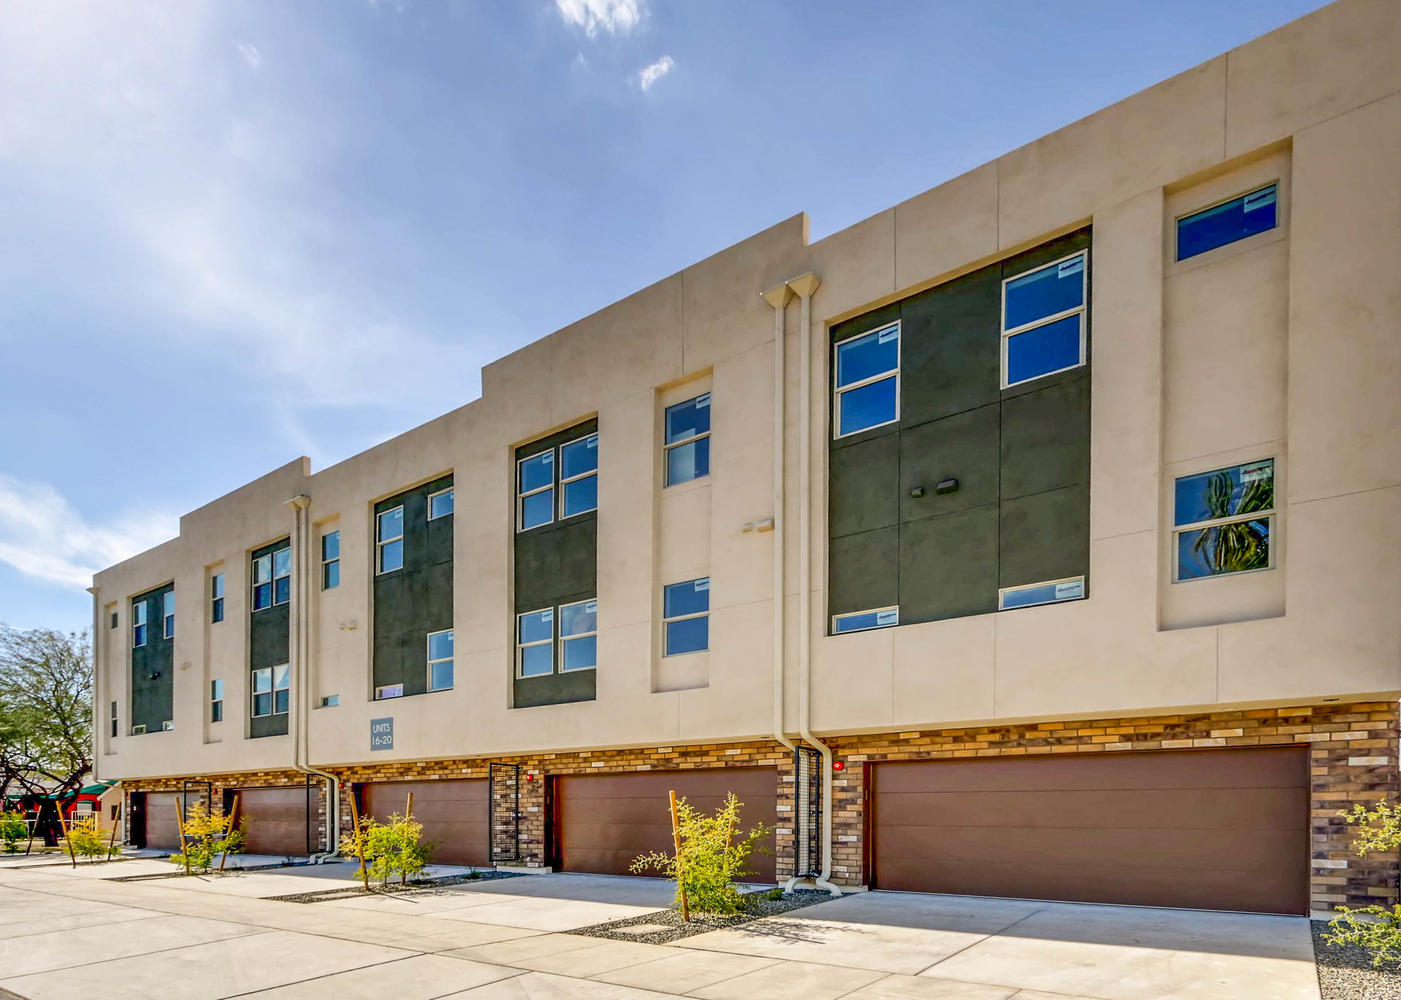 820 N 8th Ave Unit 21 Phoenix-large-065-68-Exterior Rear-1401x1000-72dpi.jpg